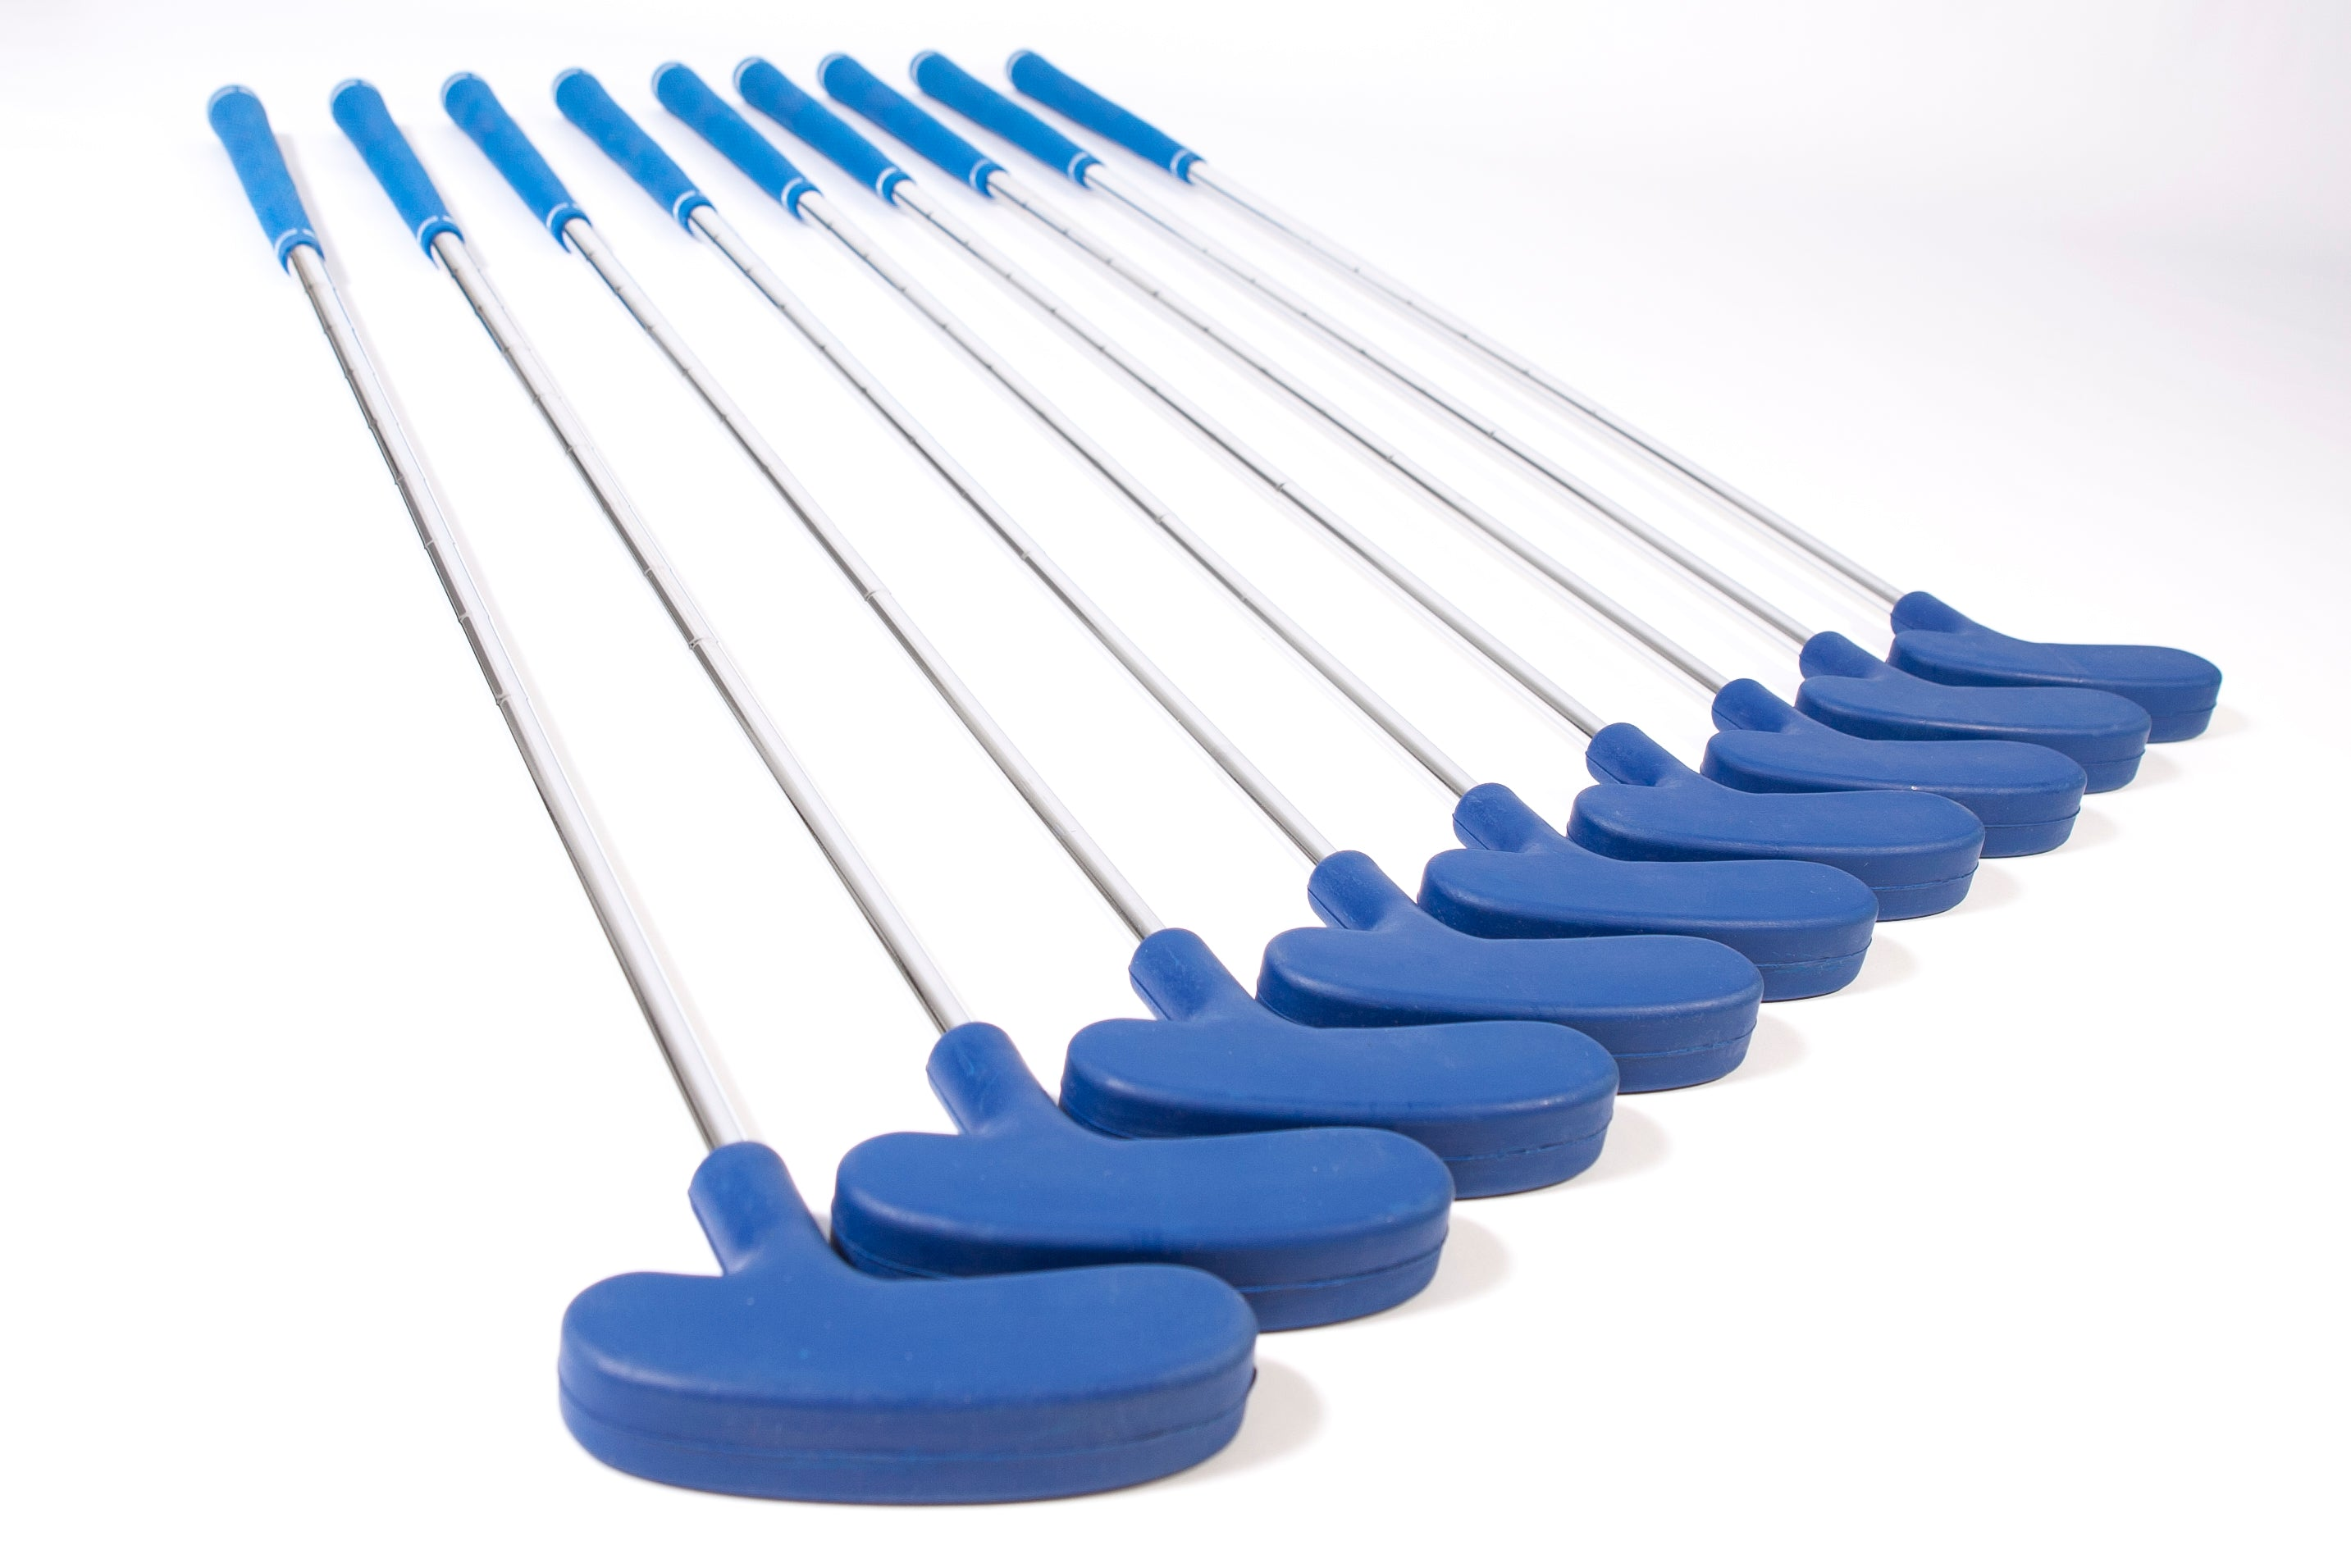 "Bundle of 9 XL Adult Rubber Headed Putters (Blue 37"") - Event Stuff Ltd Owns Putterfingers.com!"